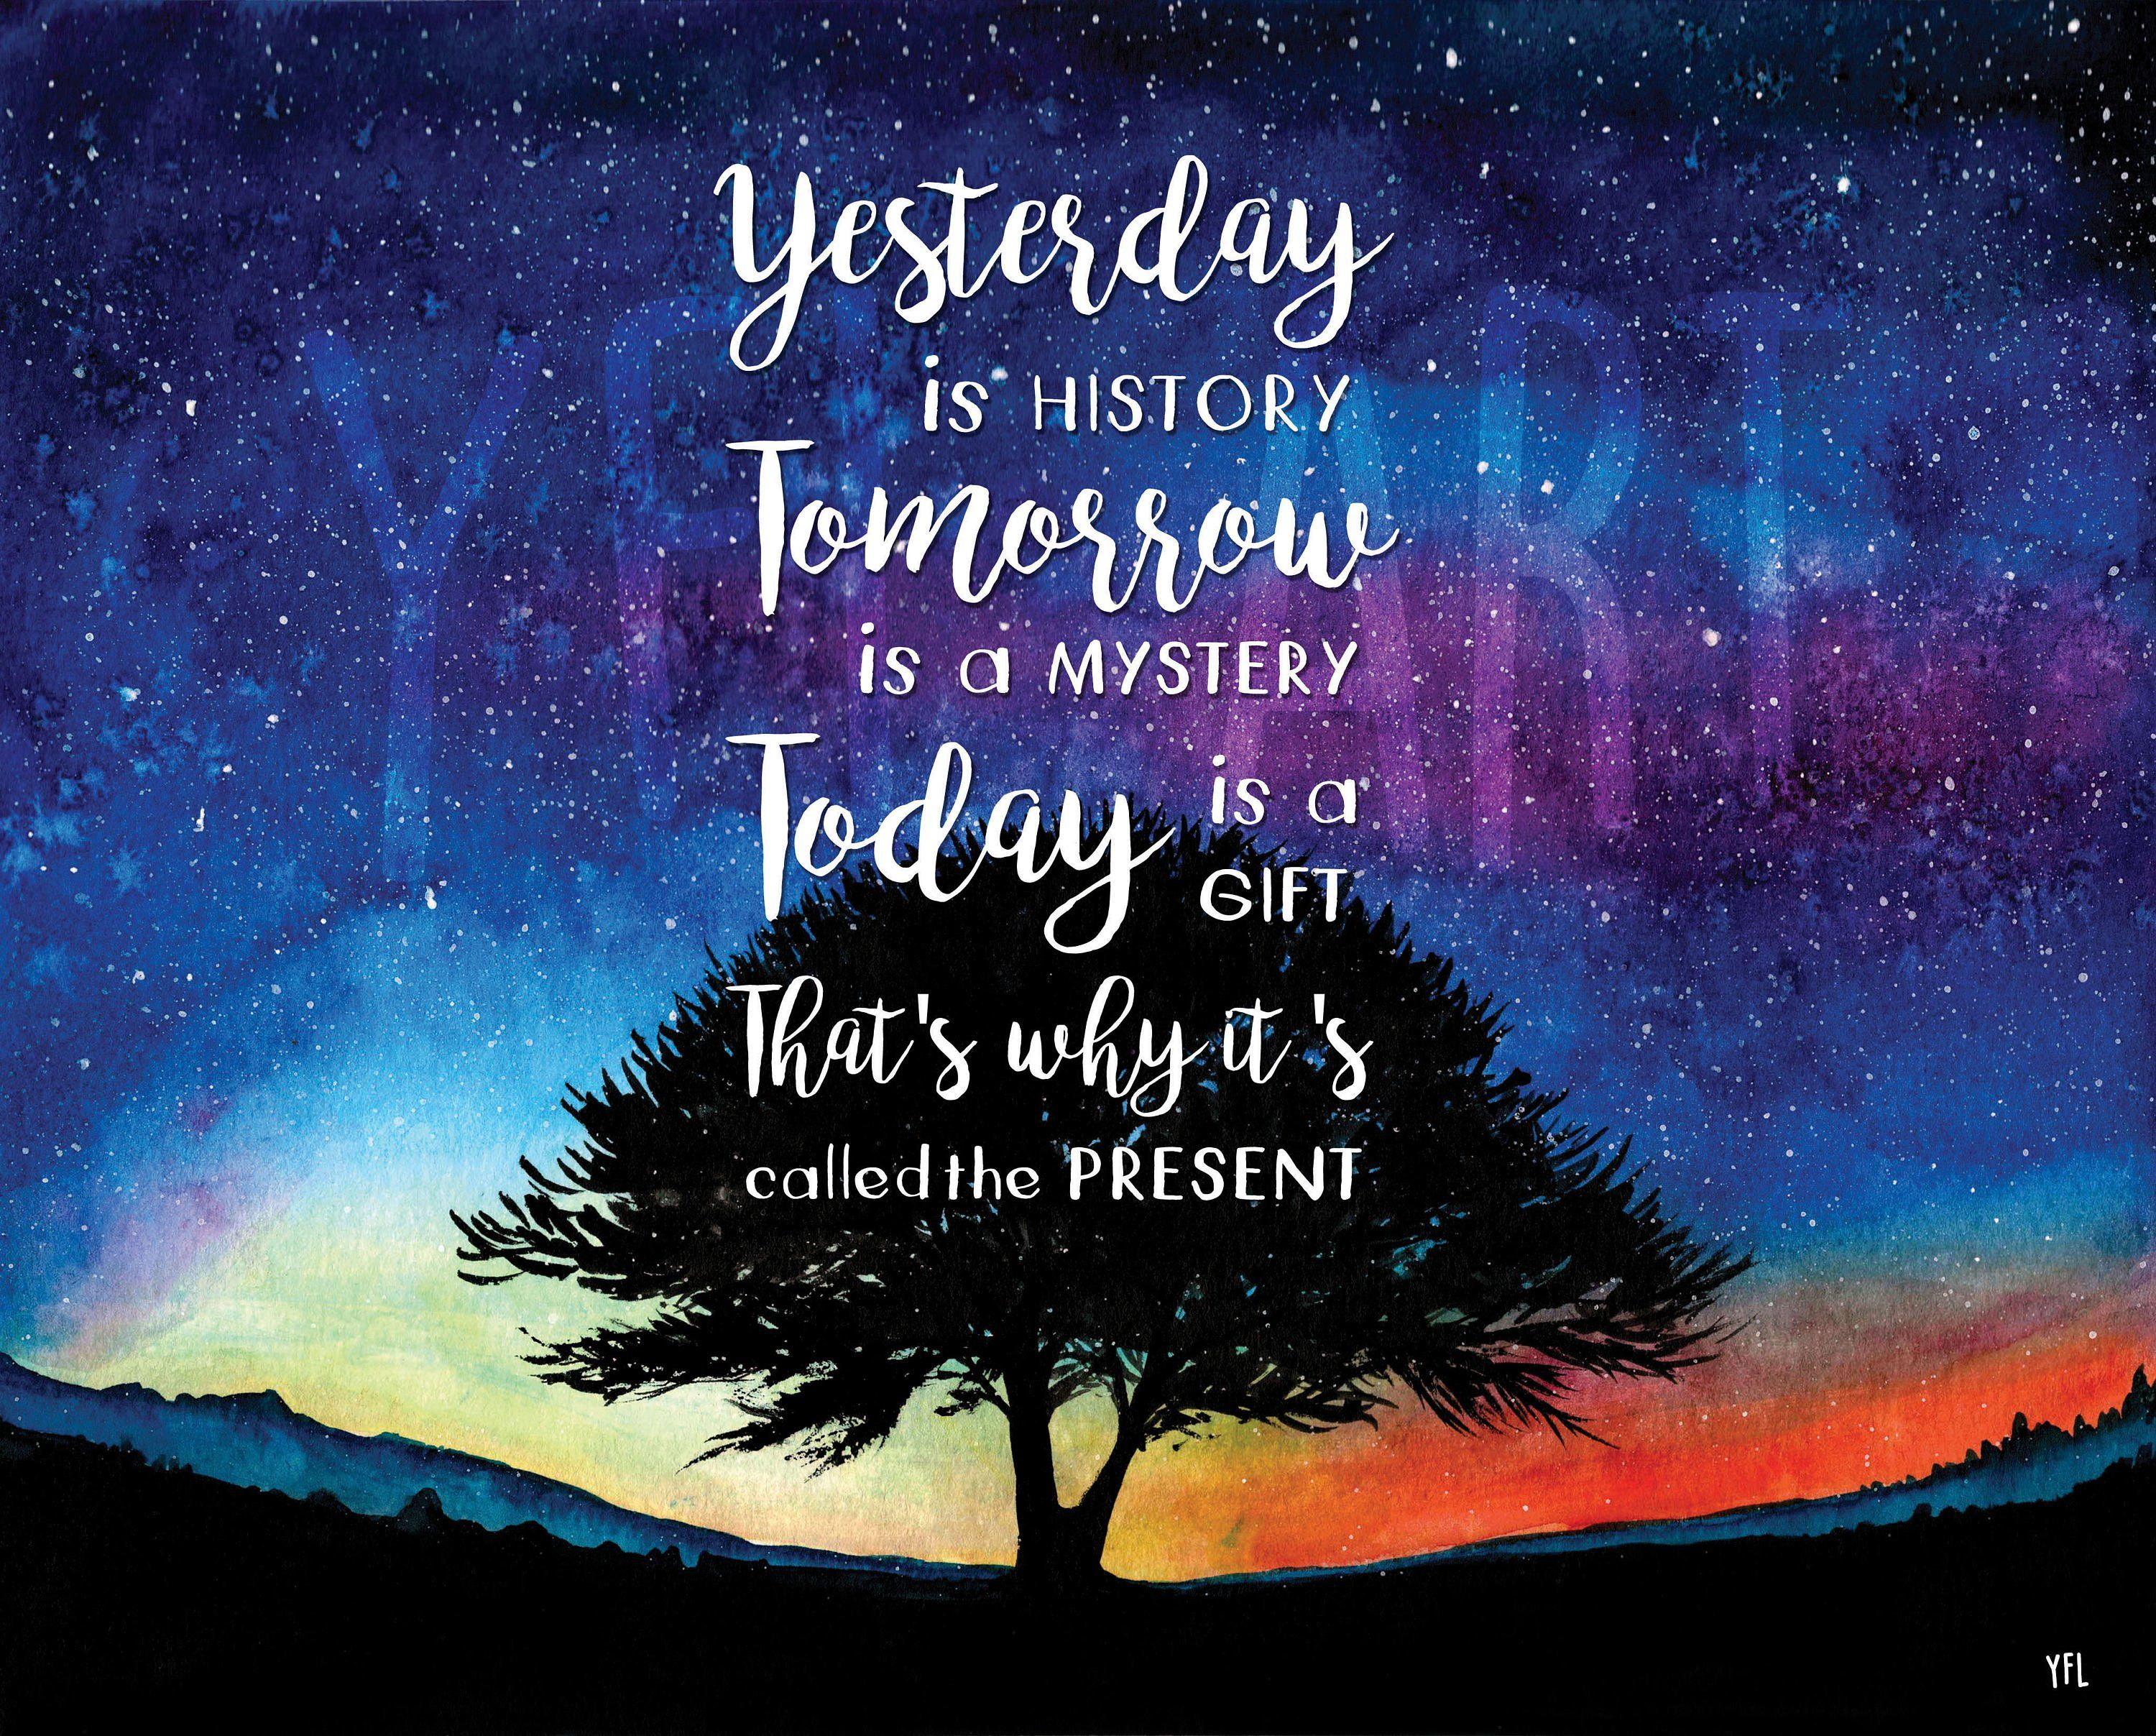 Kung Fu Panda Yesterday is history Tomorrow is a mystery  Etsy